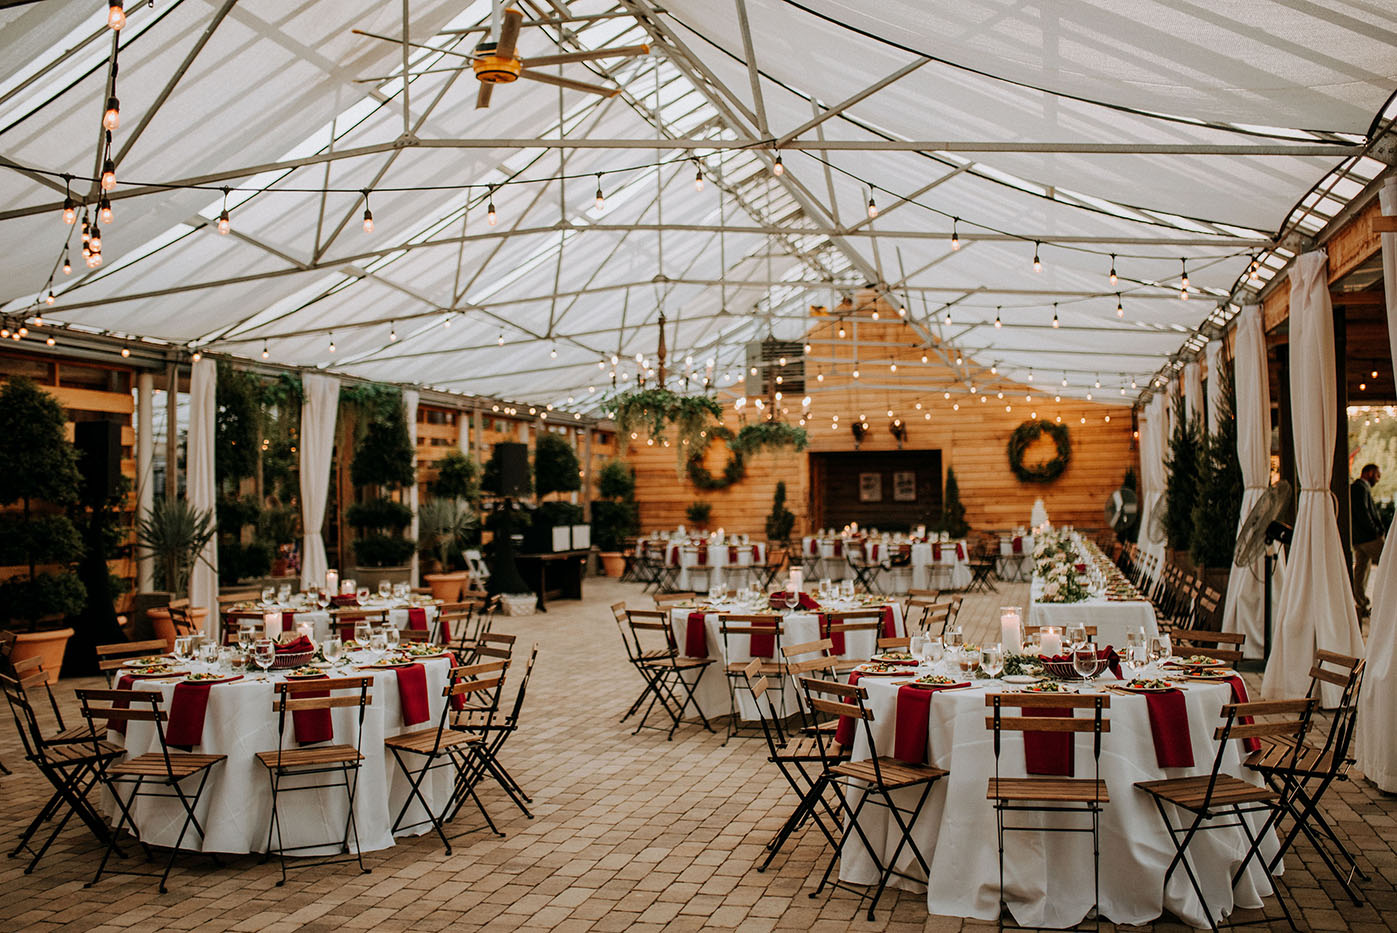 Warm Rustic Wedding Reception